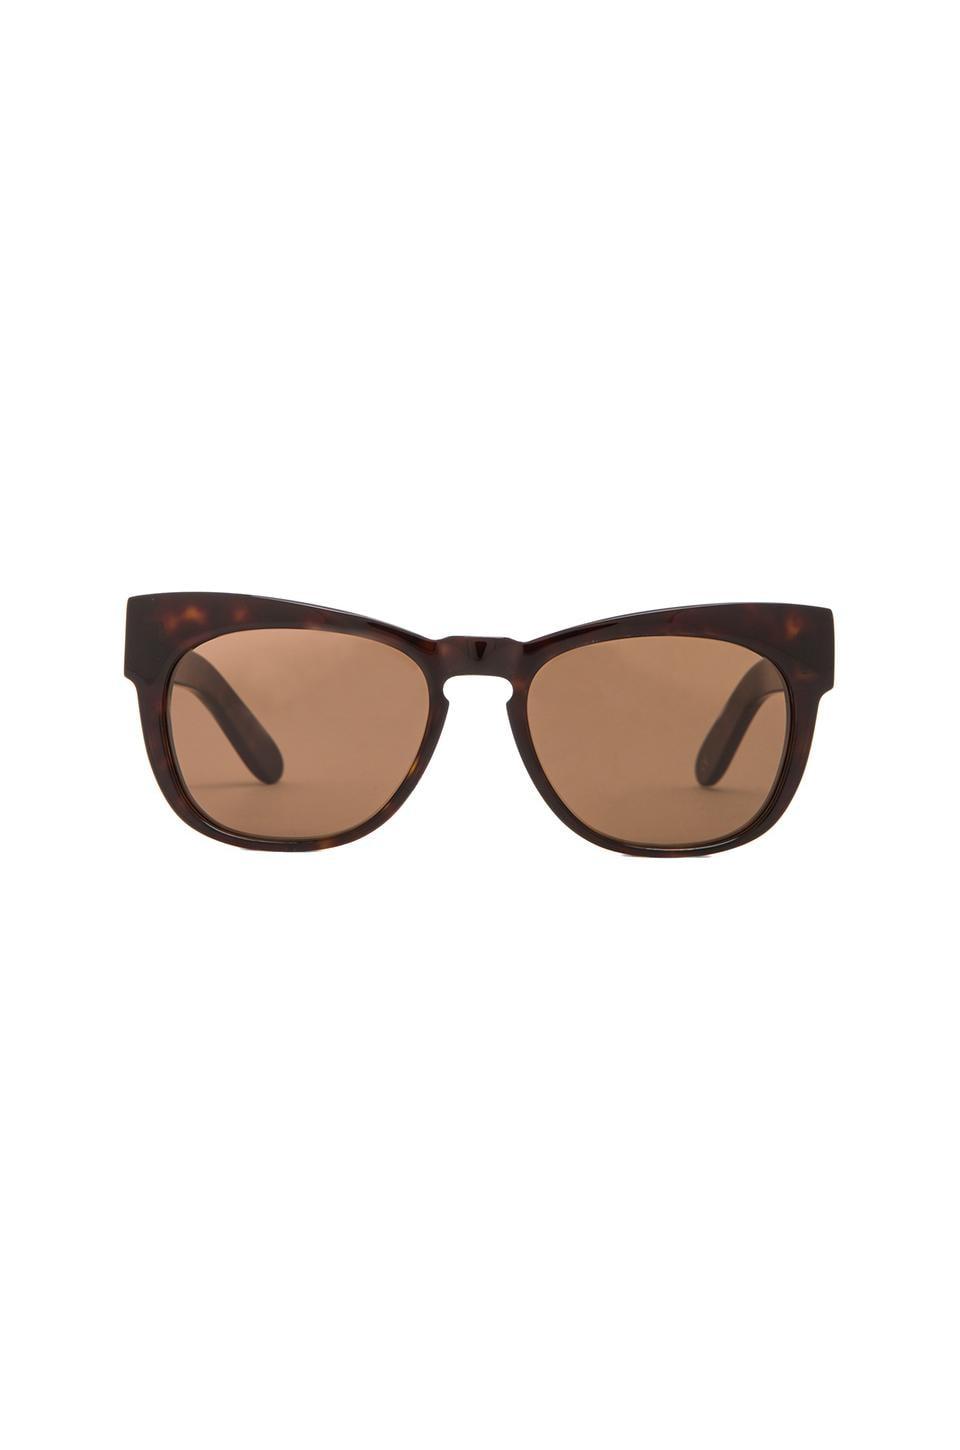 Wildfox Couture Winston Sunglasses in Tortoise